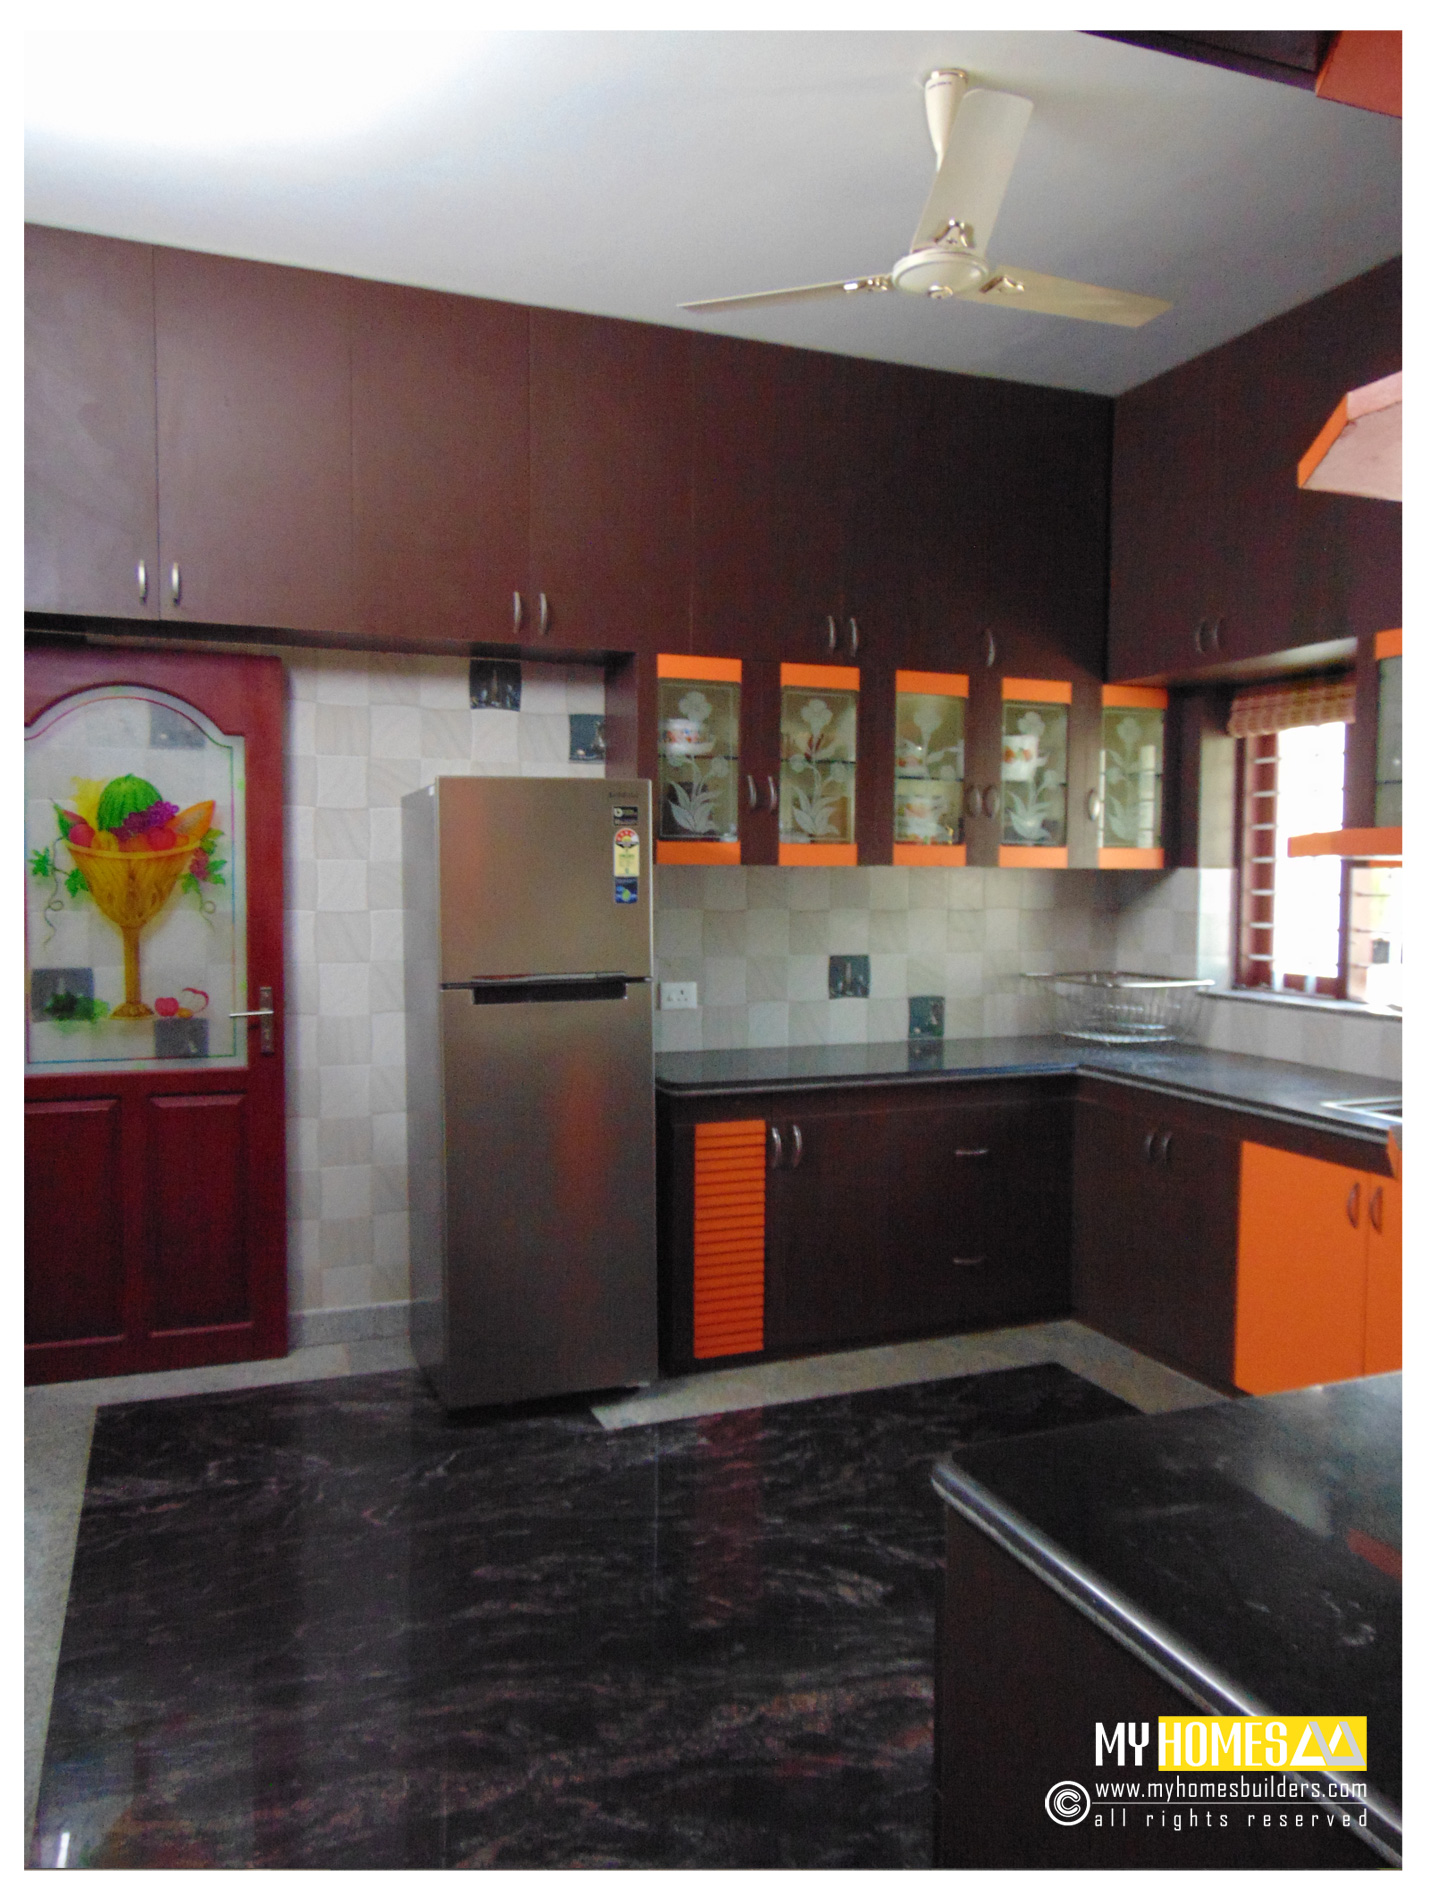 Kerala kitchen designs idea in modular style for house in for Home kitchen design pictures